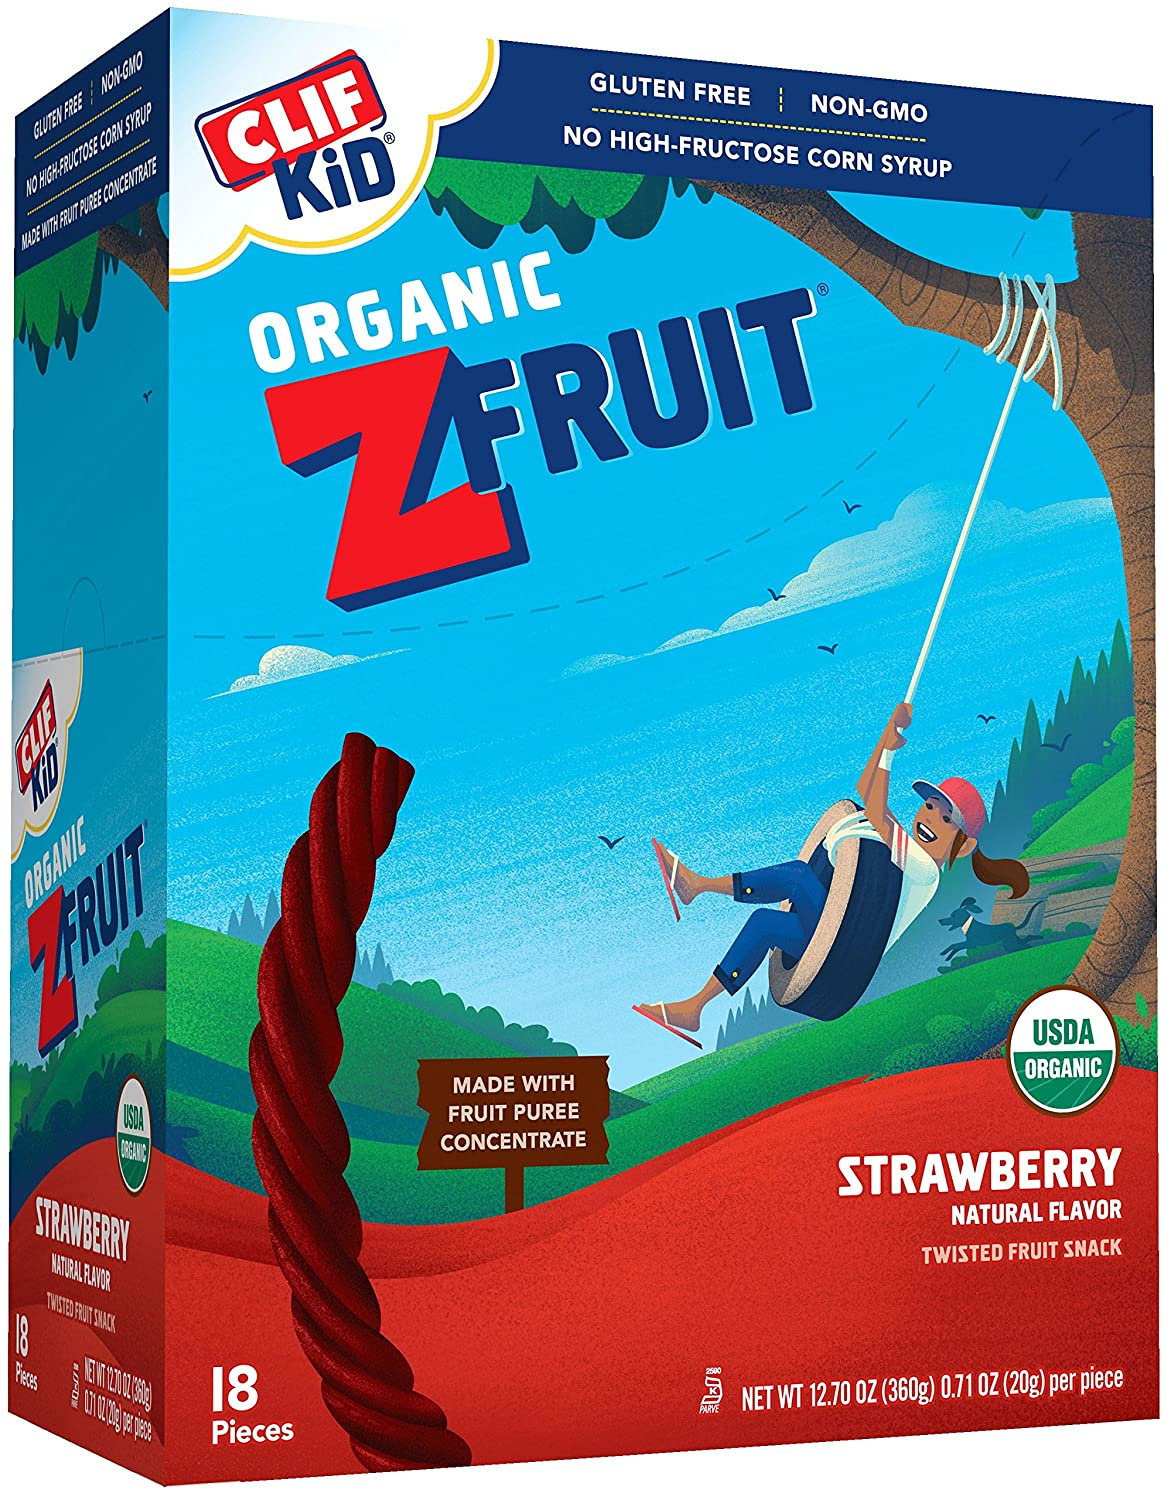 Clif Kid Zfruit   Organic Fruit Rope   Strawberry   (0.7 Ounce Rope, 18 Count) by Zfruit